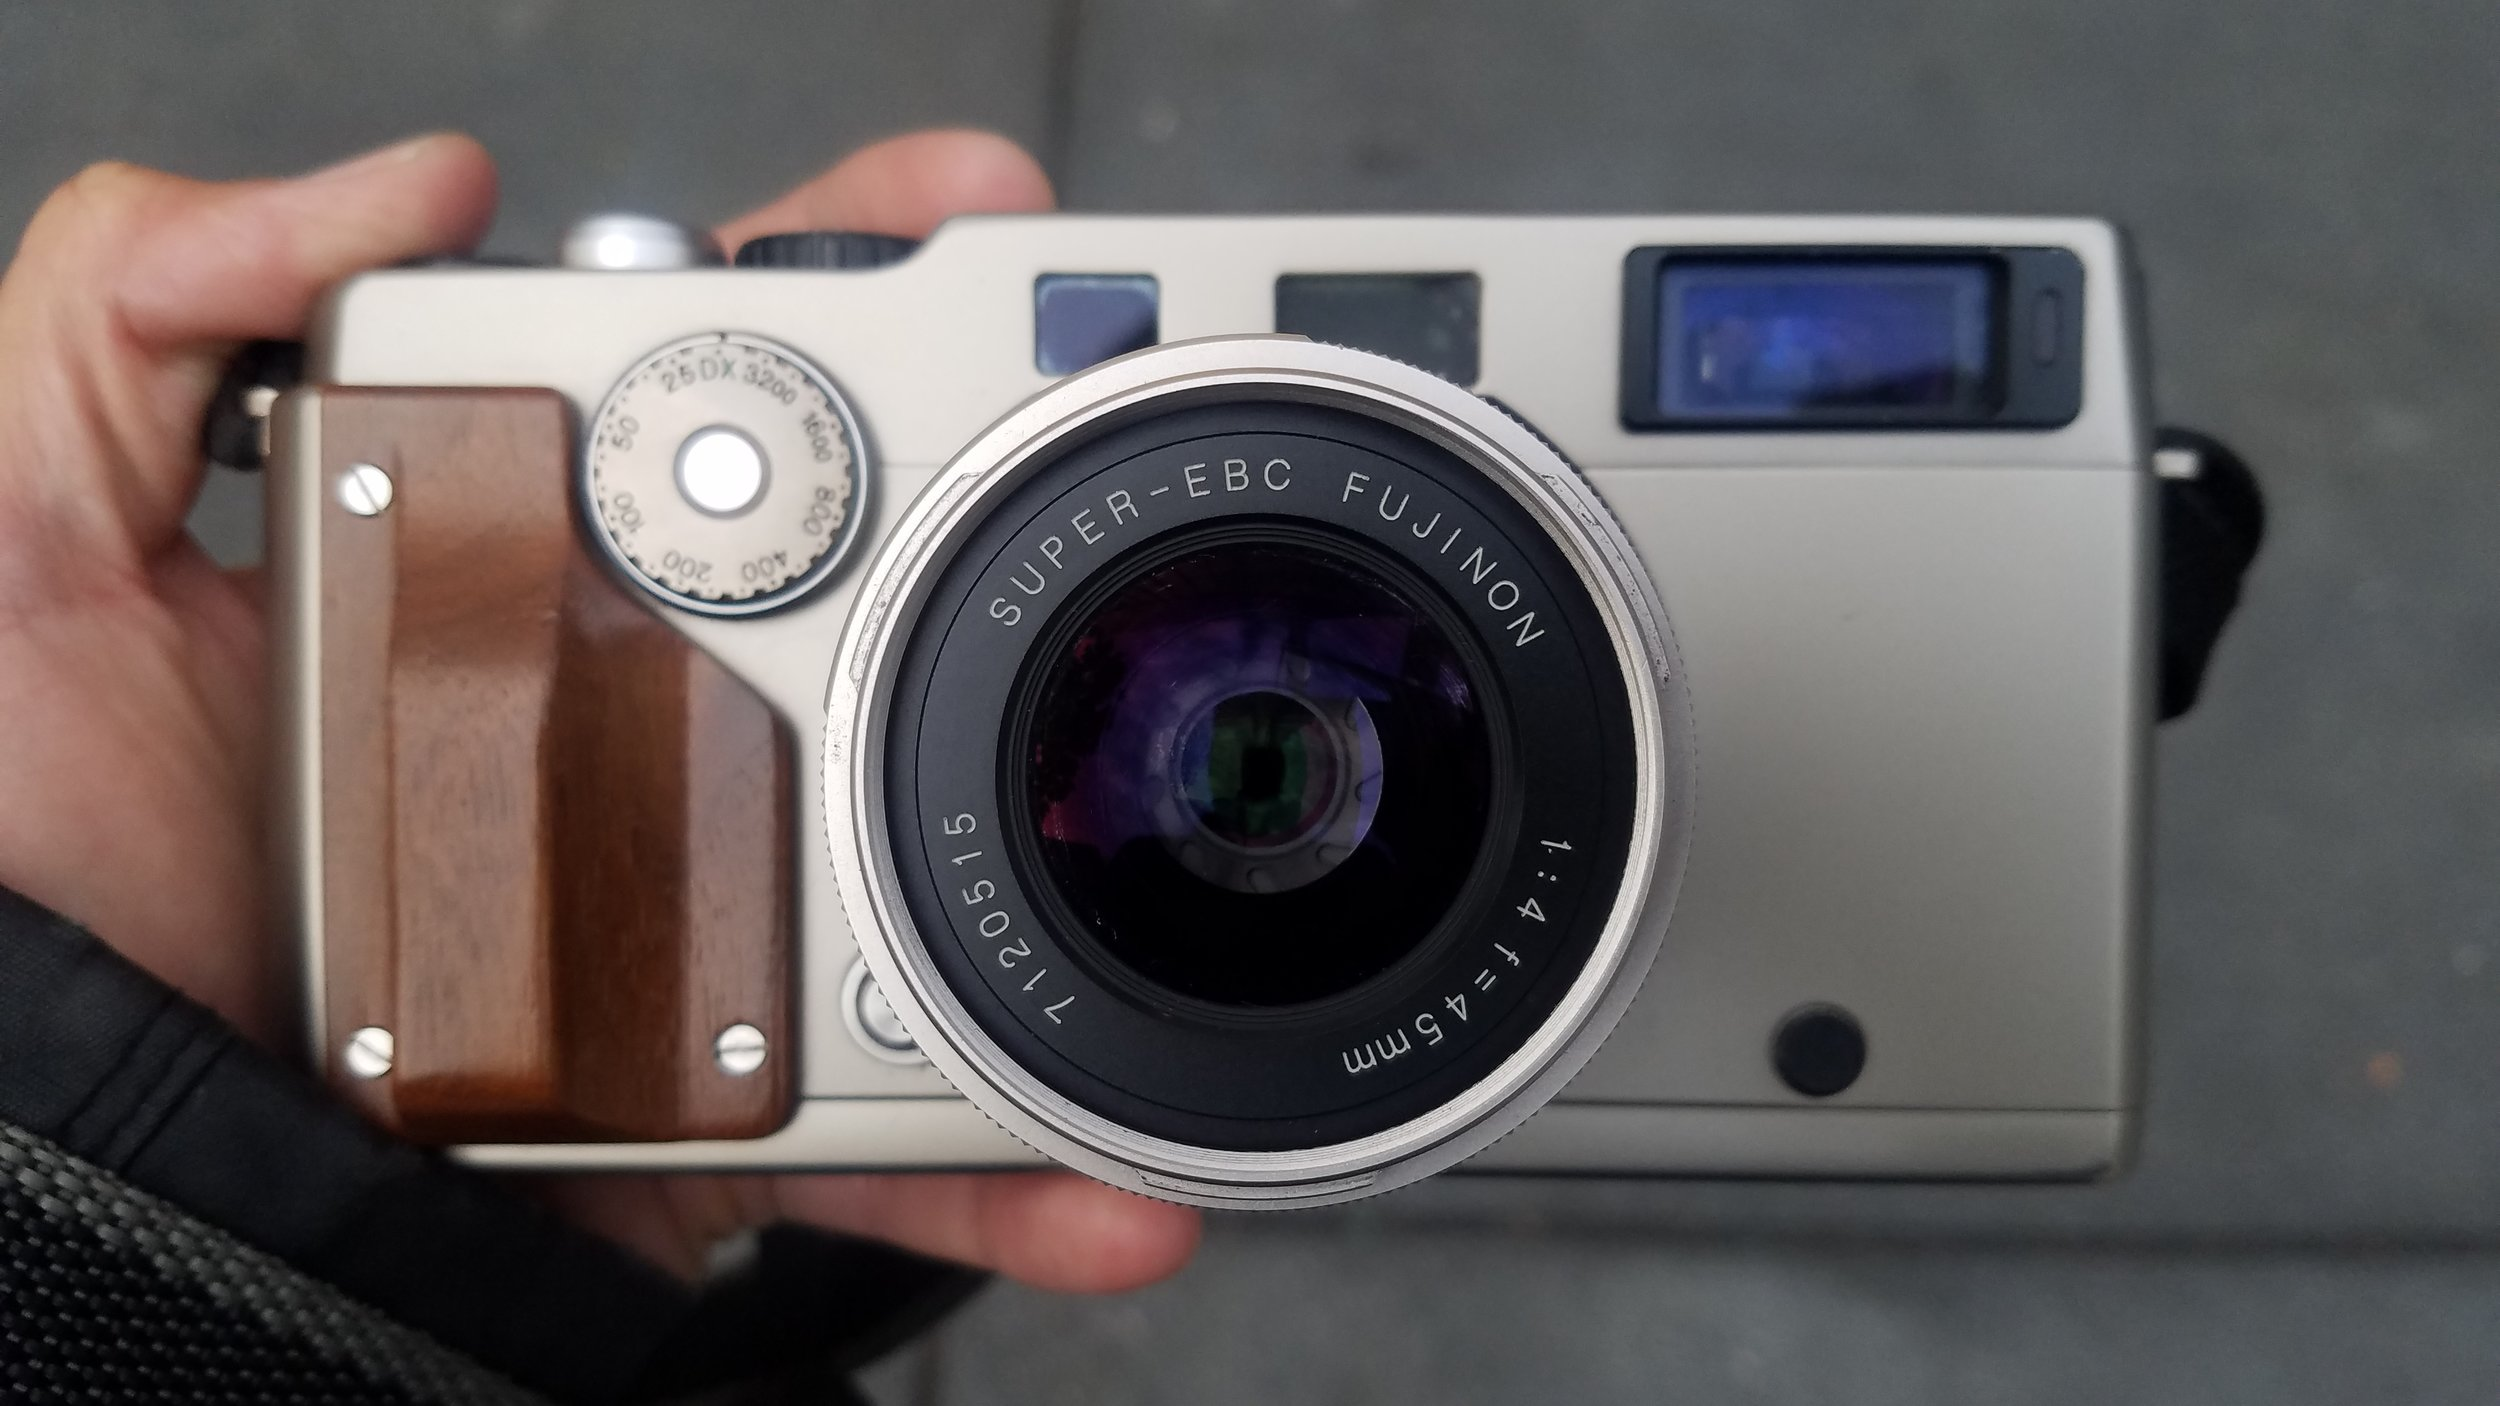 Fujifilm TX-1 (Hasselblad Xpan) in silver with optional wood grip and standard 45mm f/4 lens